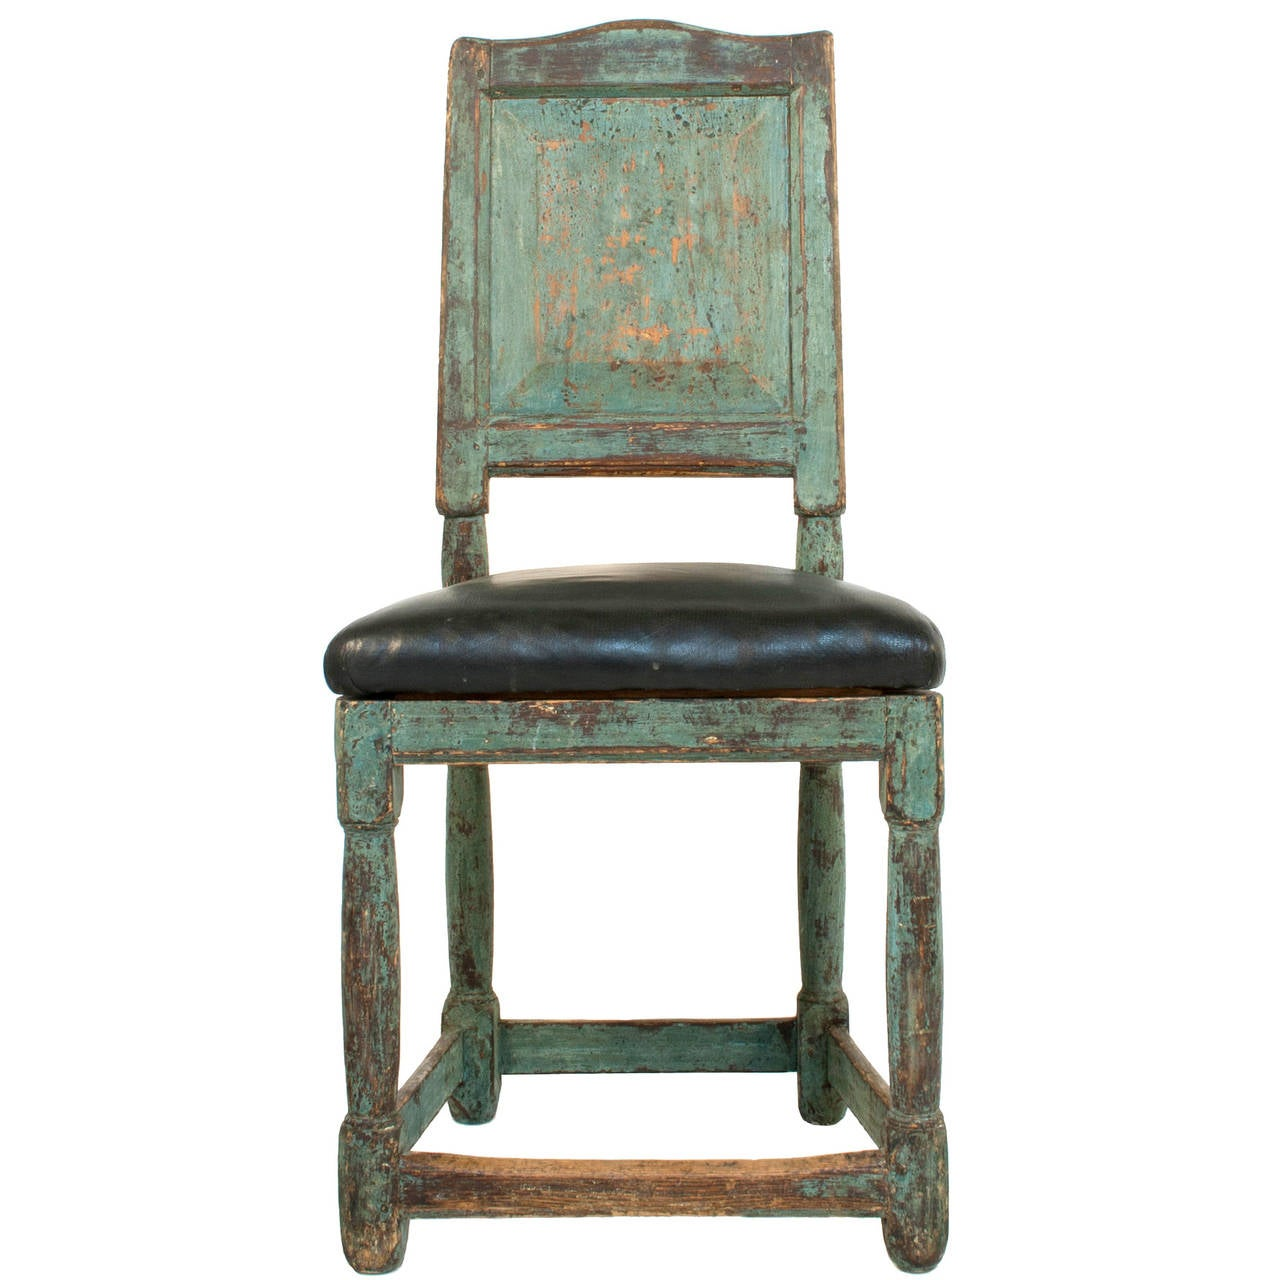 Gustavian side chair for sale at 1stdibs for Side chairs for sale